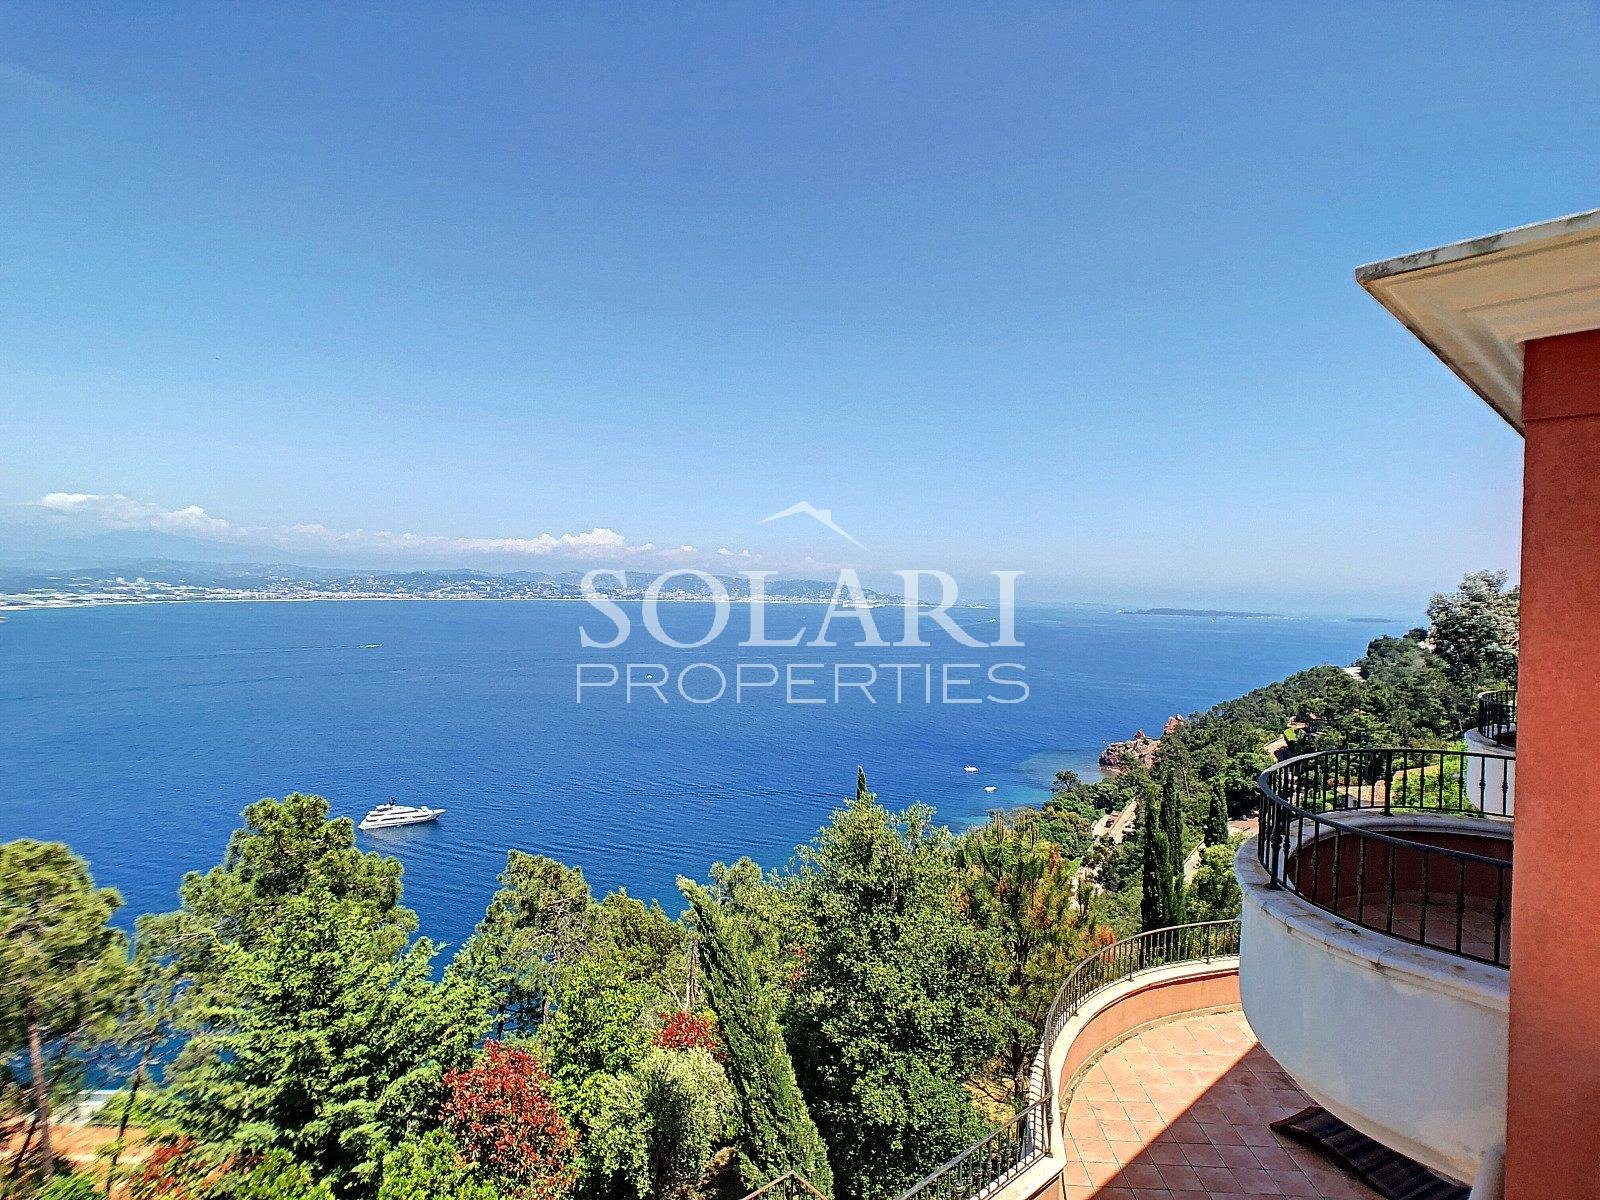 New built villa with swimmingpool overlooking the Cannes Bay